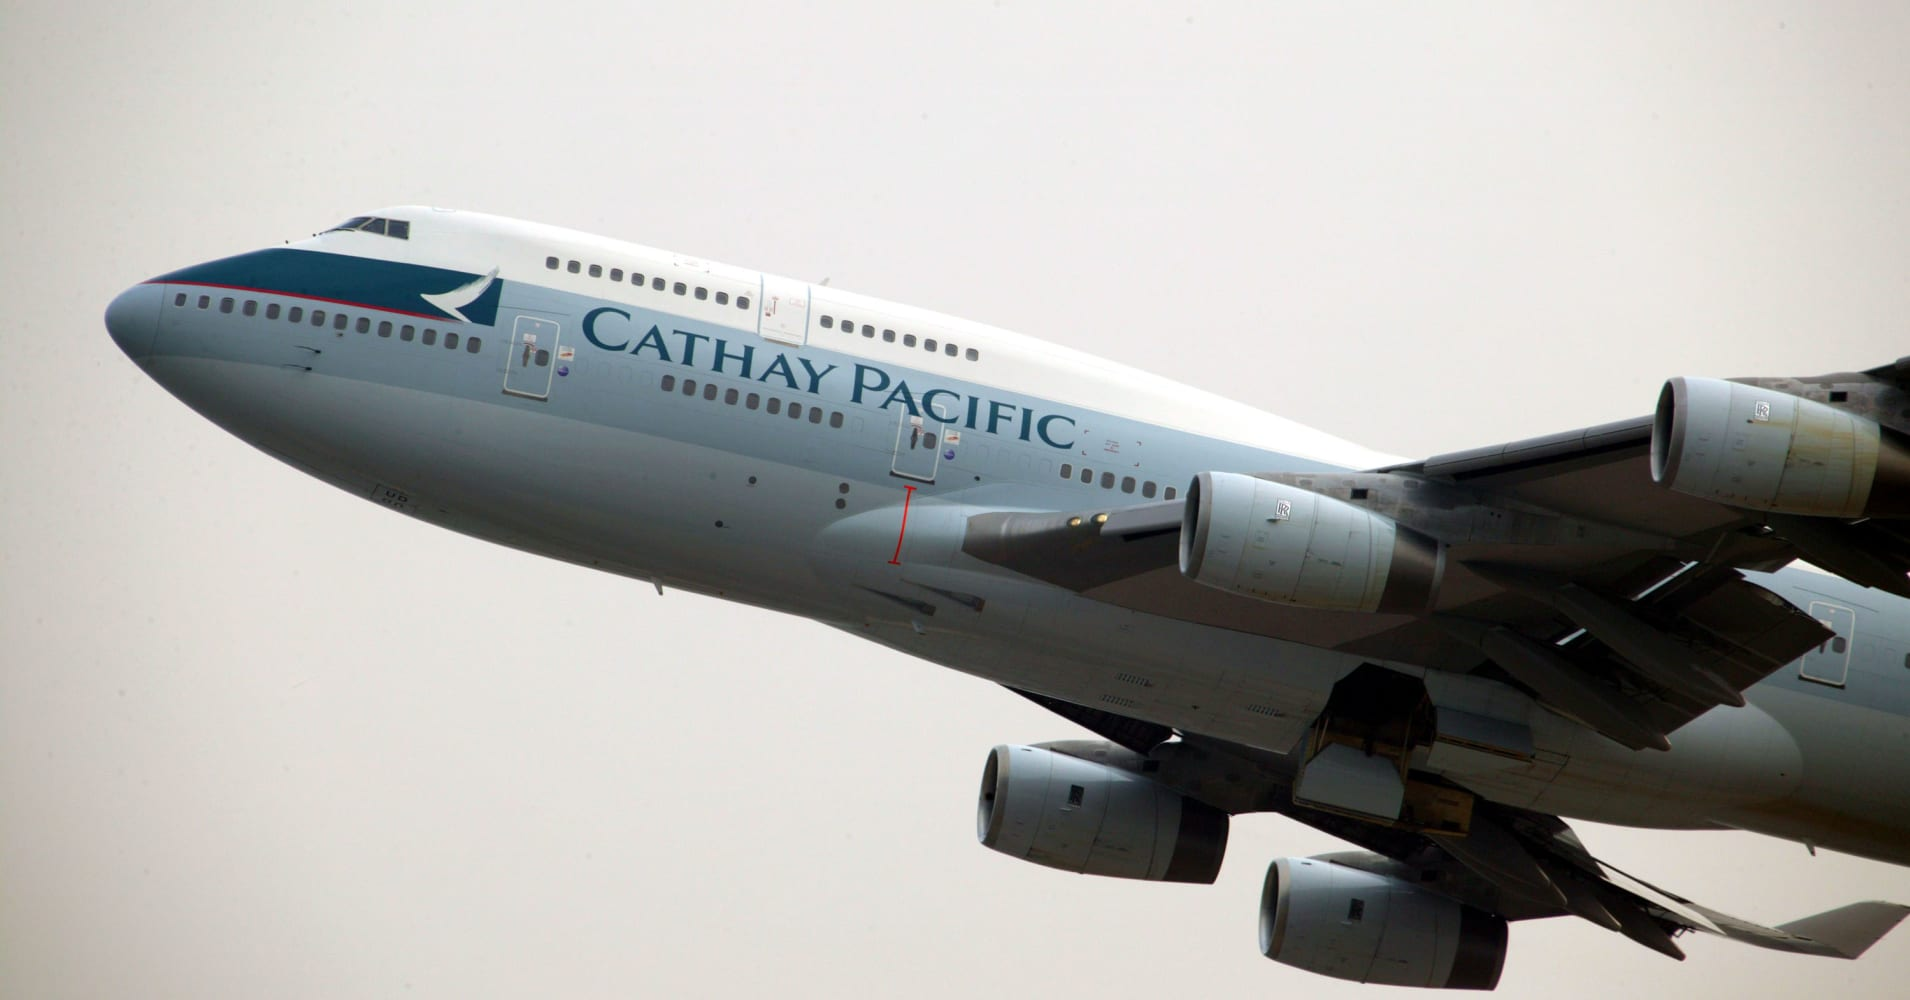 Hong Kong privacy watchdog to investigate Cathay Pacific over massive data breach